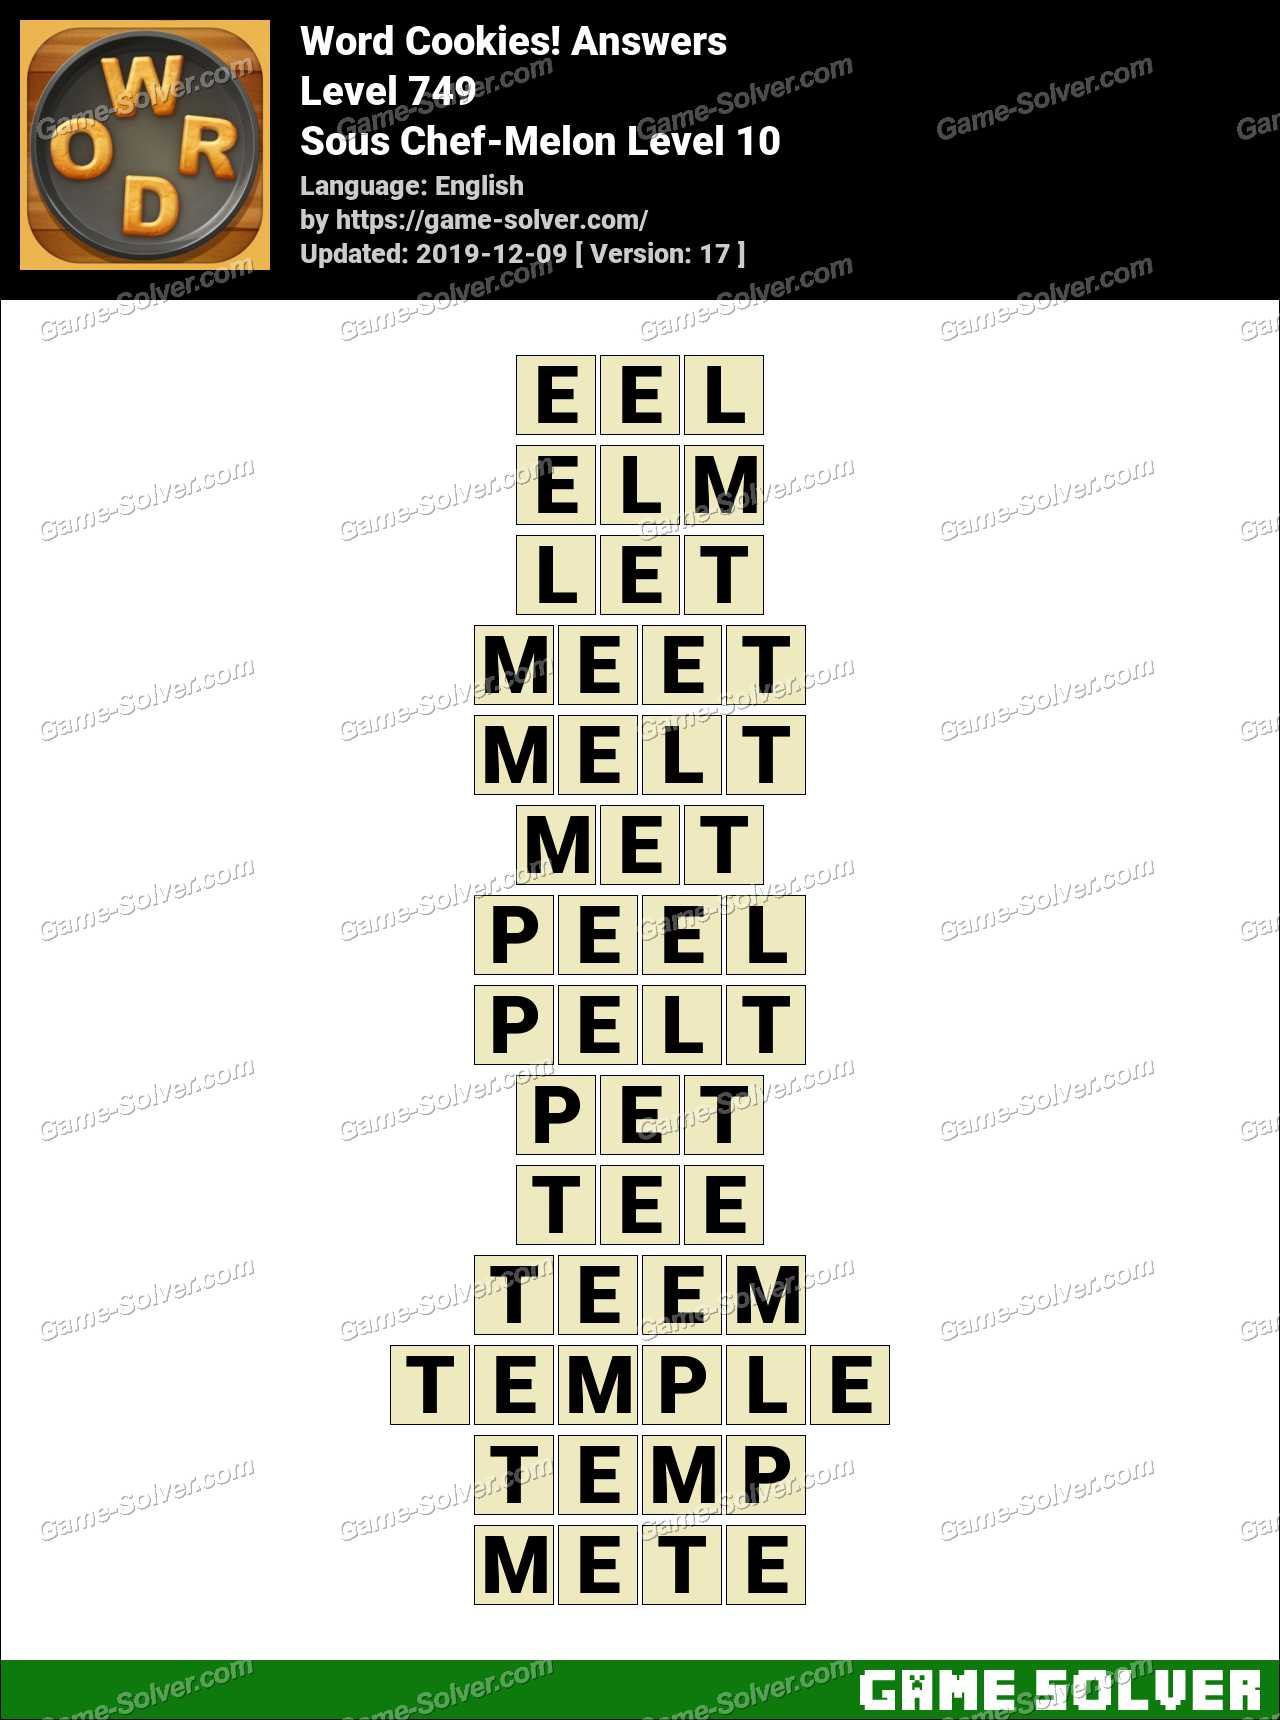 Word Cookies Sous Chef-Melon Level 10 Answers